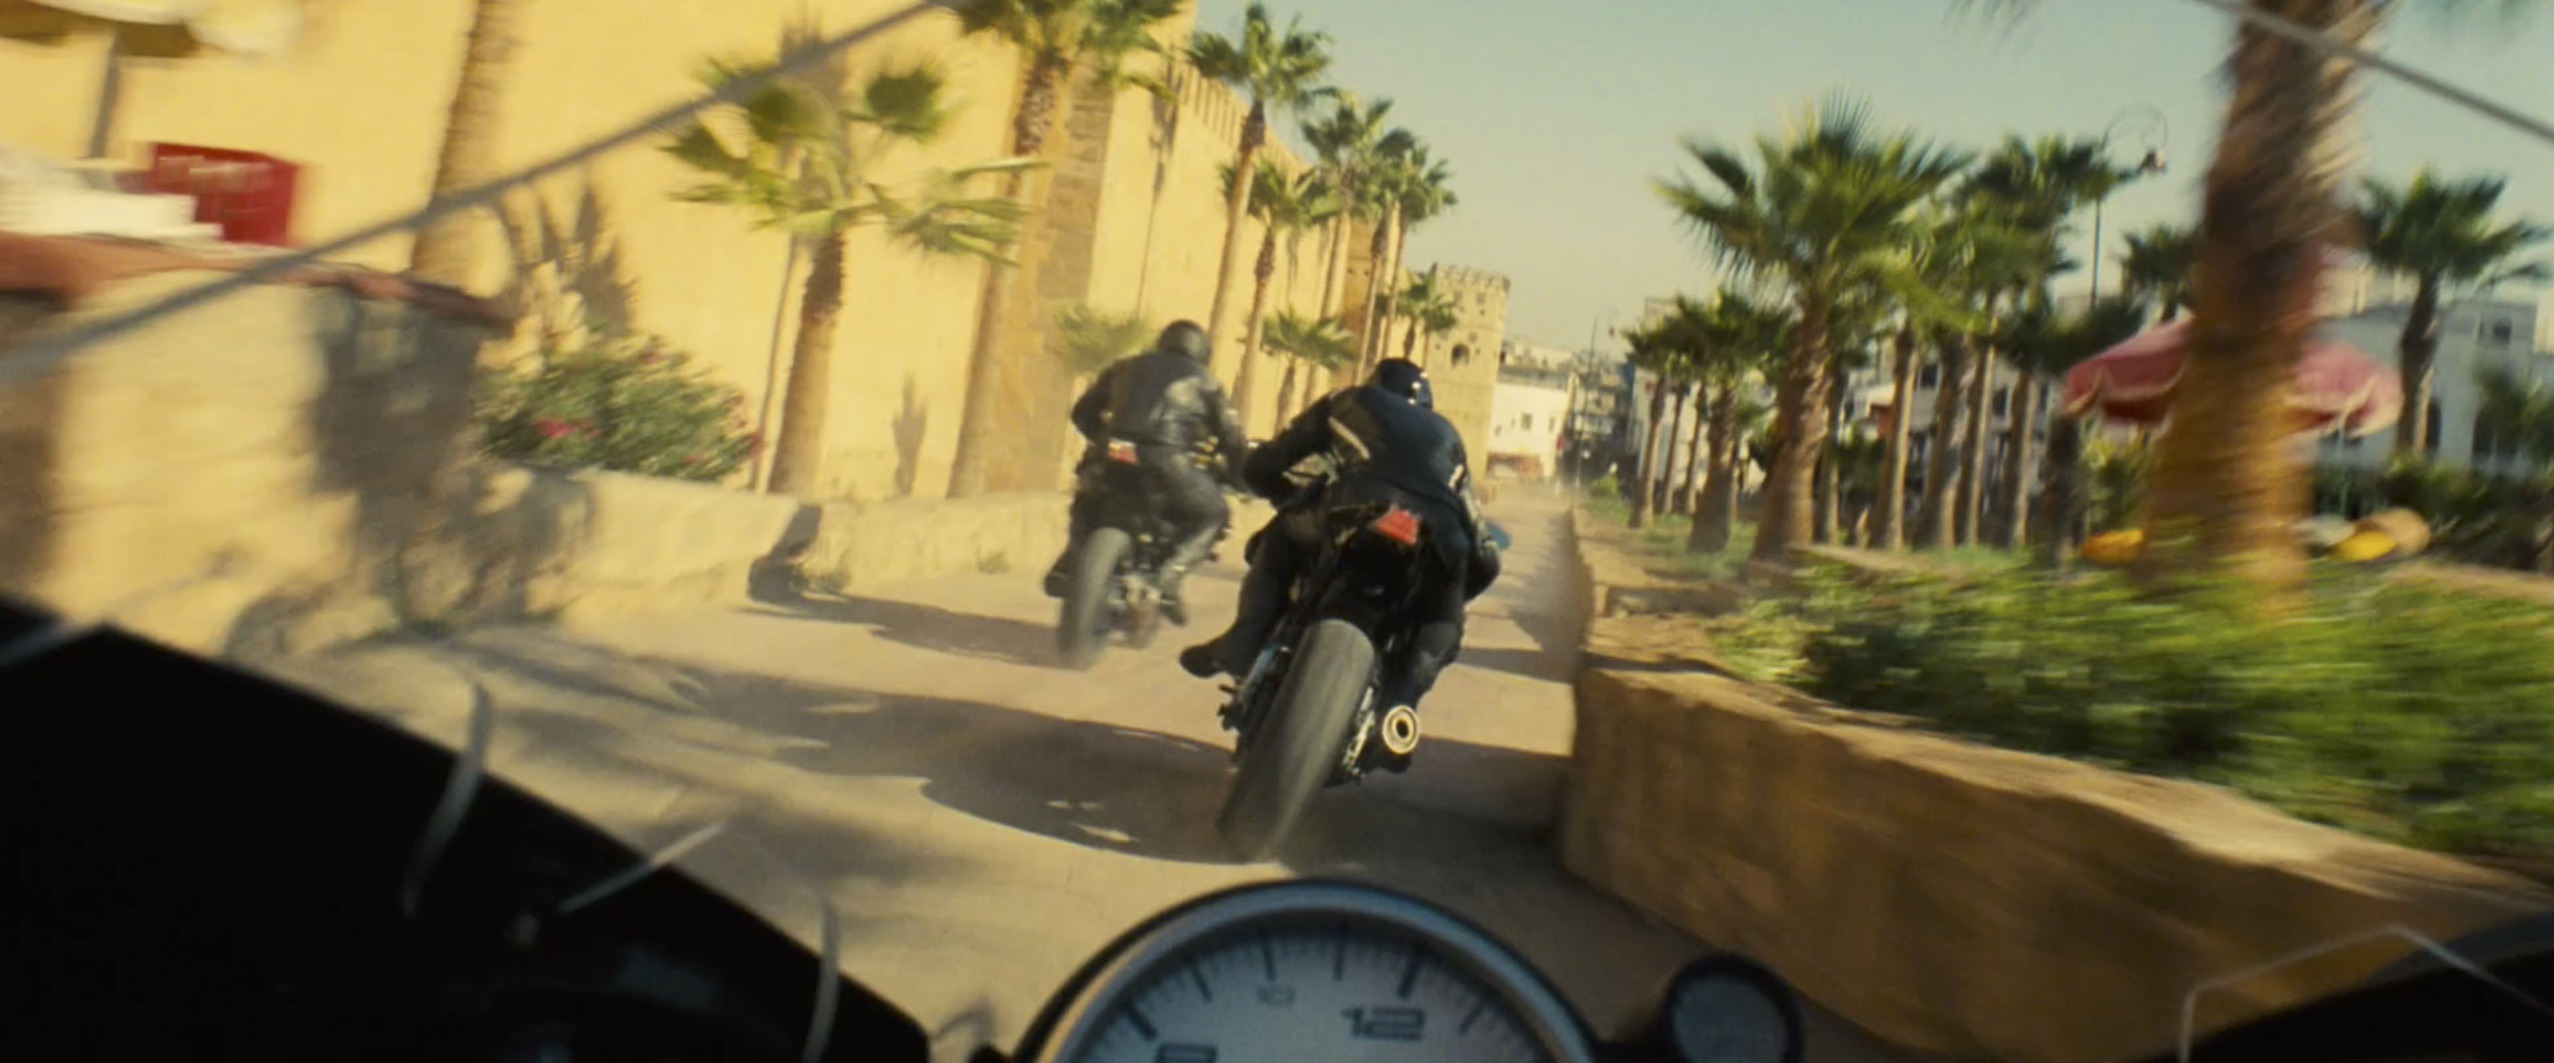 Mission Impossible: Rogue Nation motorcycle chase scene